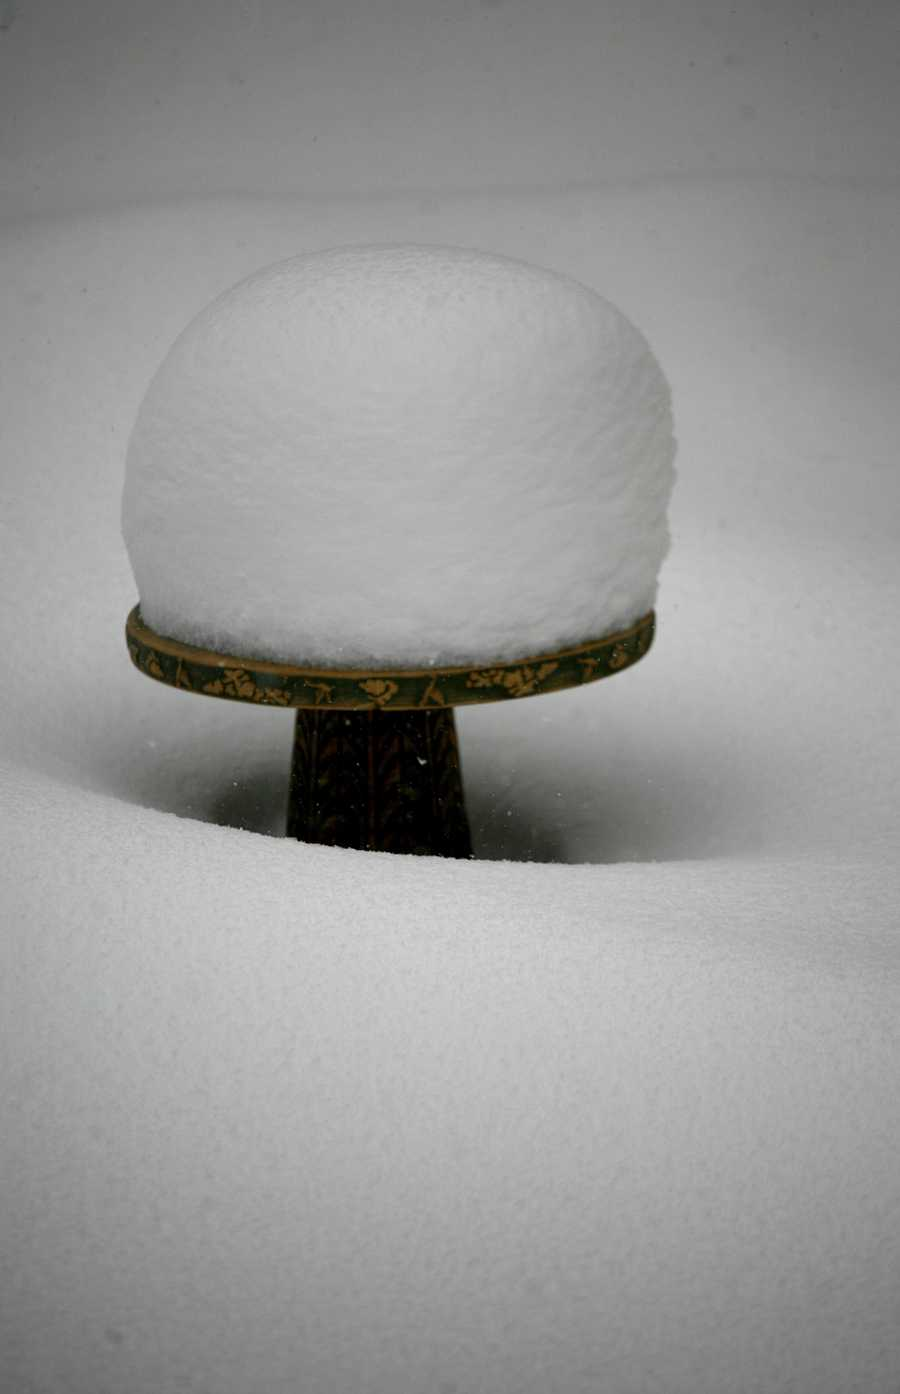 Nearly 20 inches of snow covers spots on the South Shore, Wednesday Jan. 22, 2014. In Marshfield, snow tops a backyard birdbath.